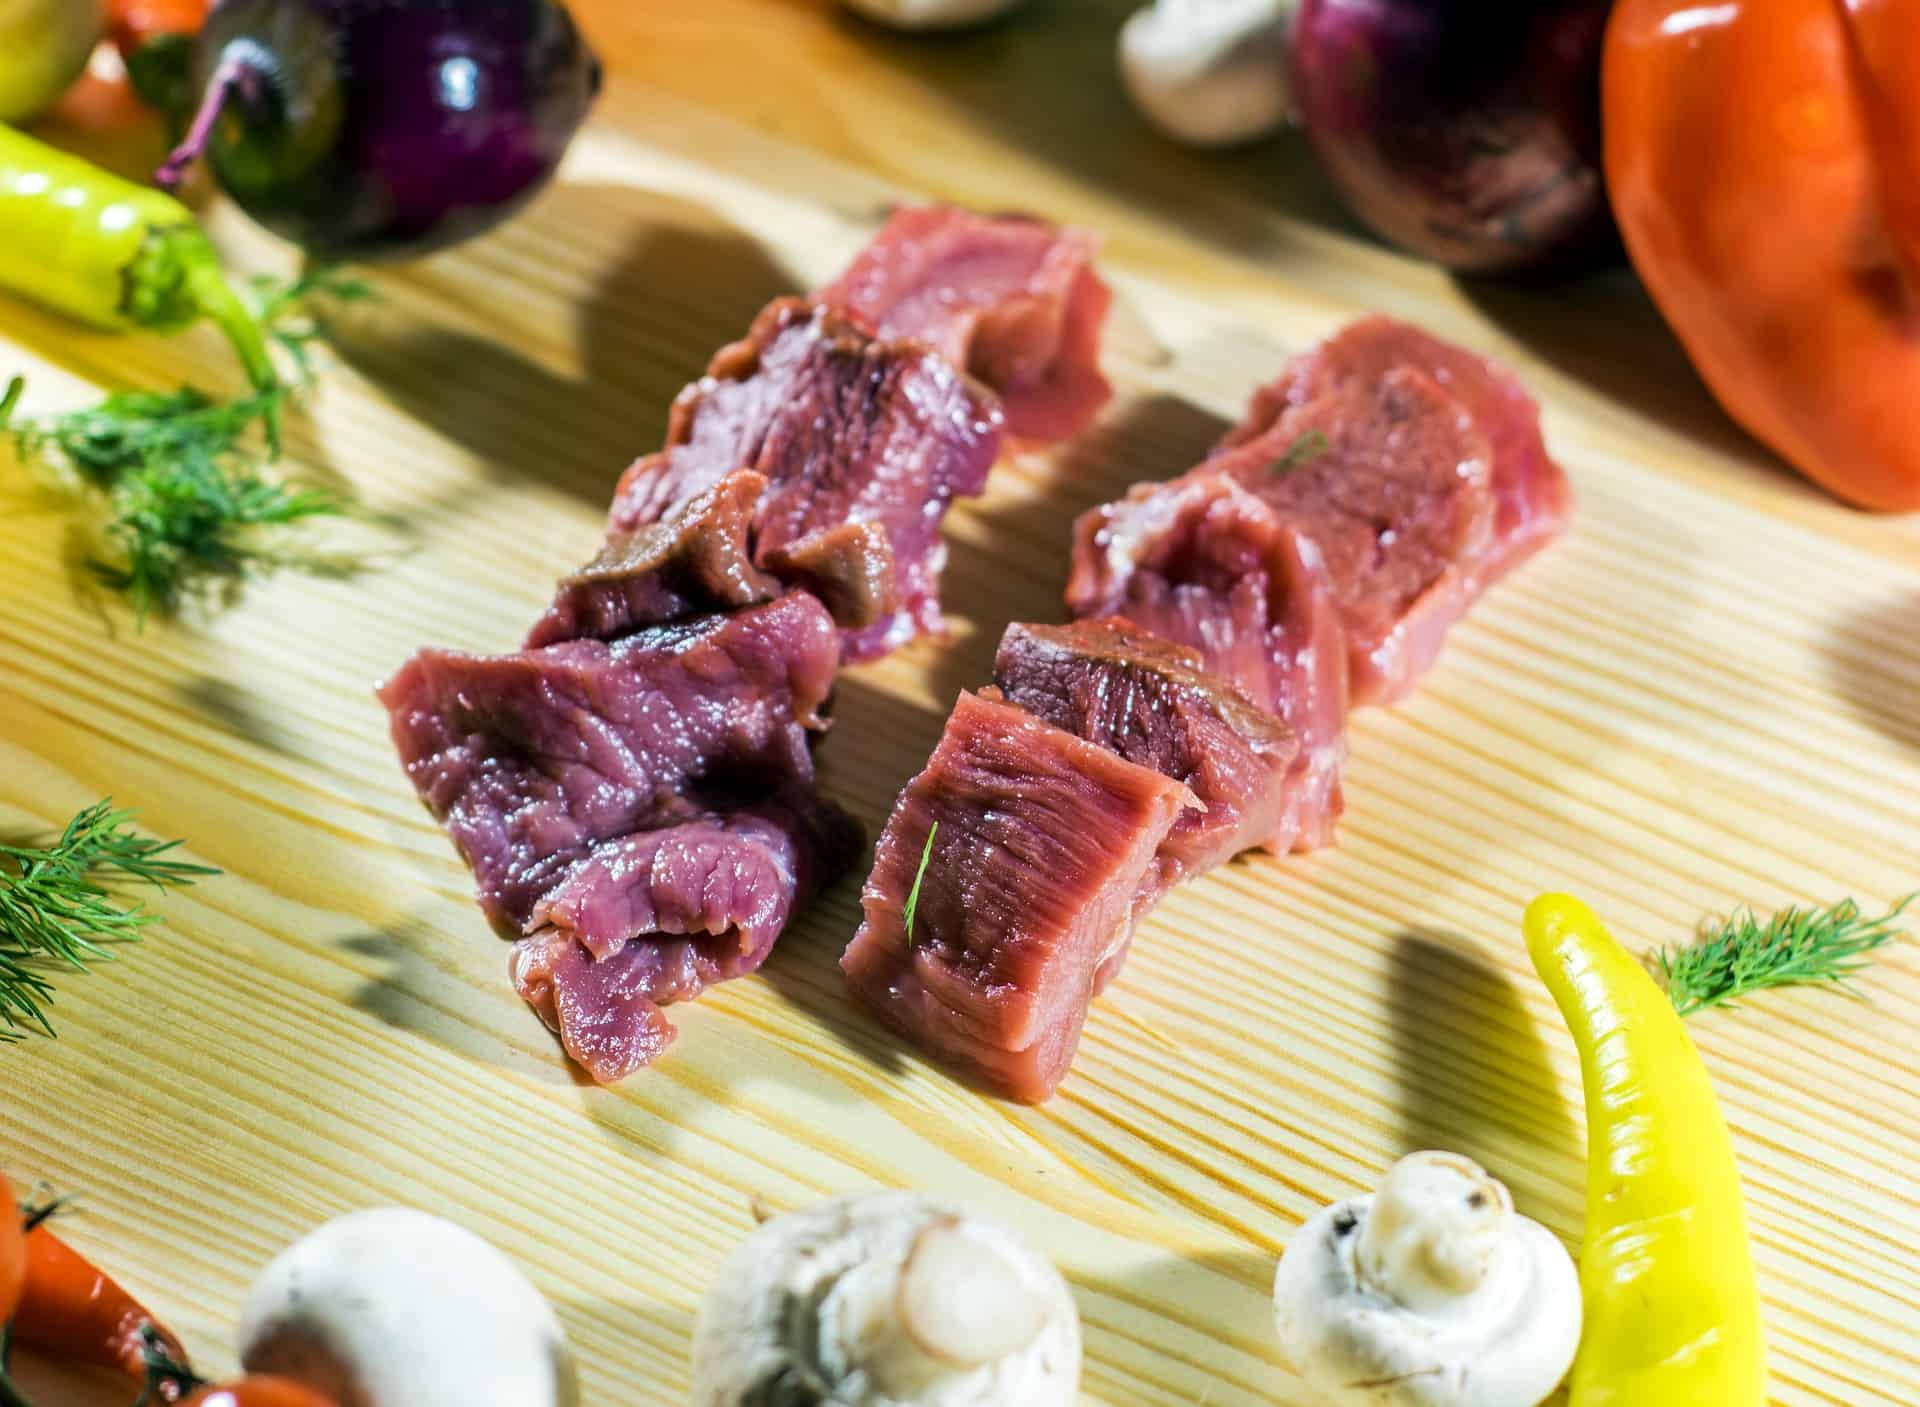 Goat Meat Recipe To Impress Your Guests